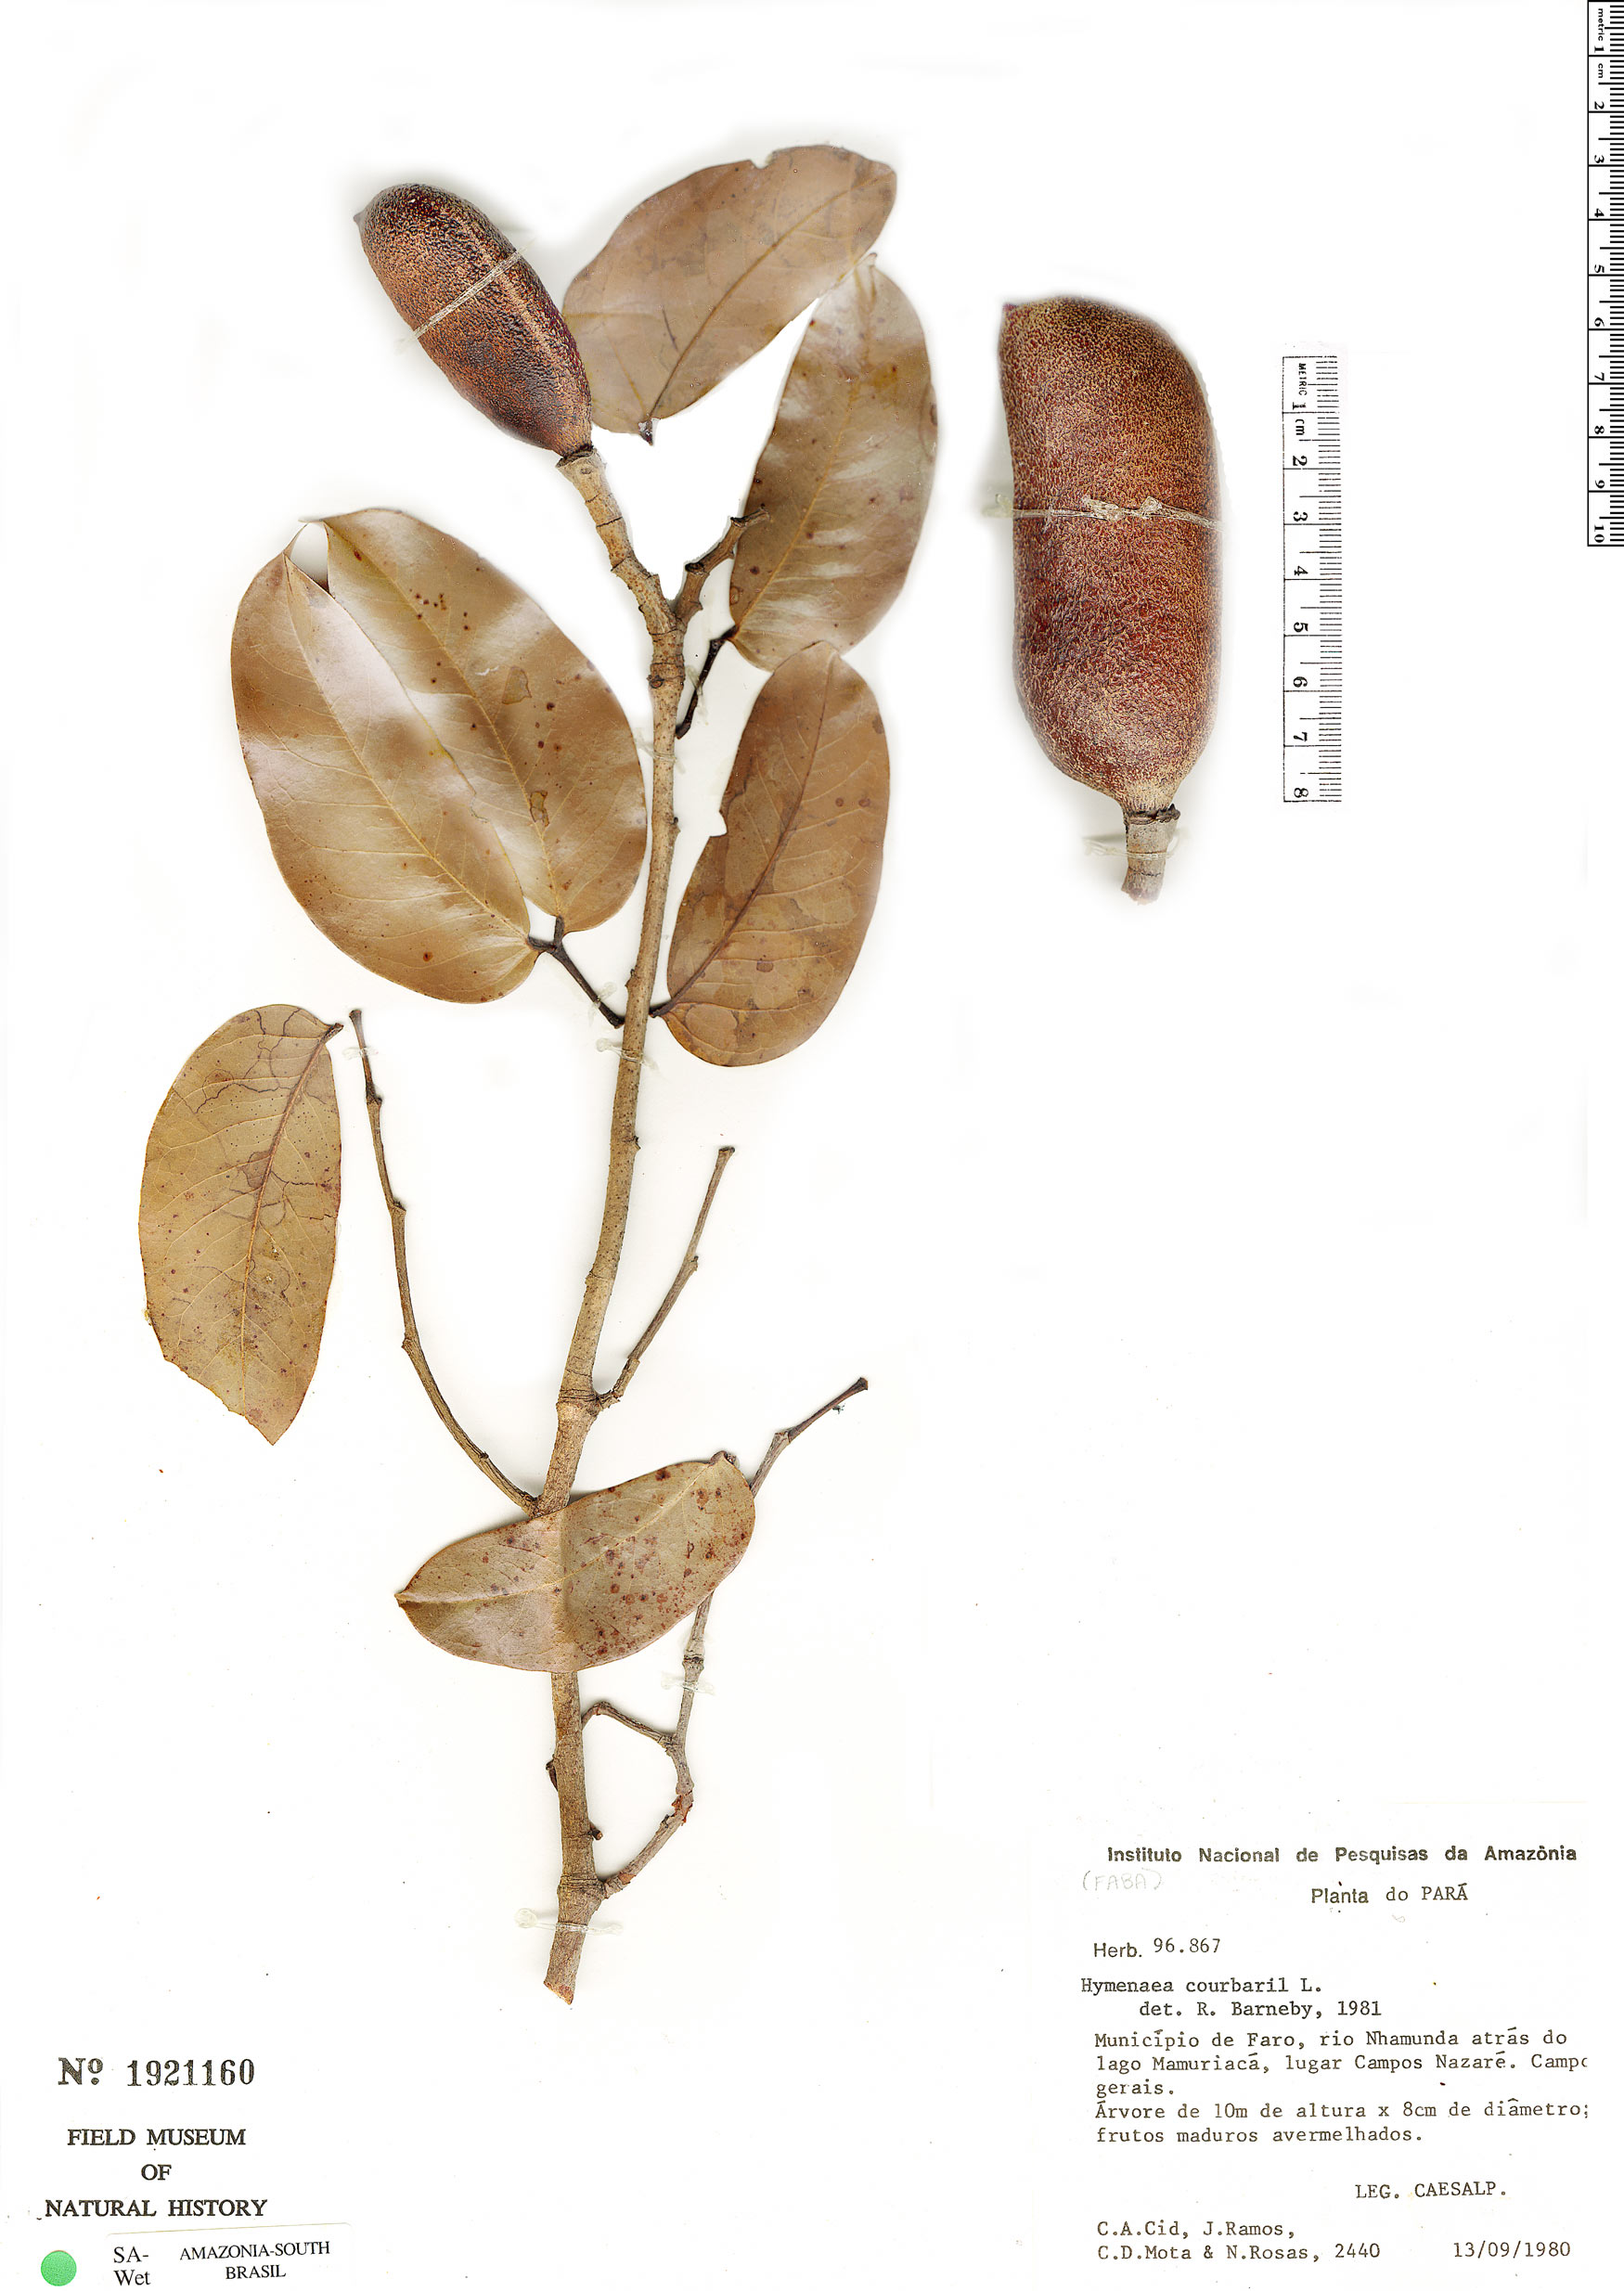 Specimen: Hymenaea courbaril